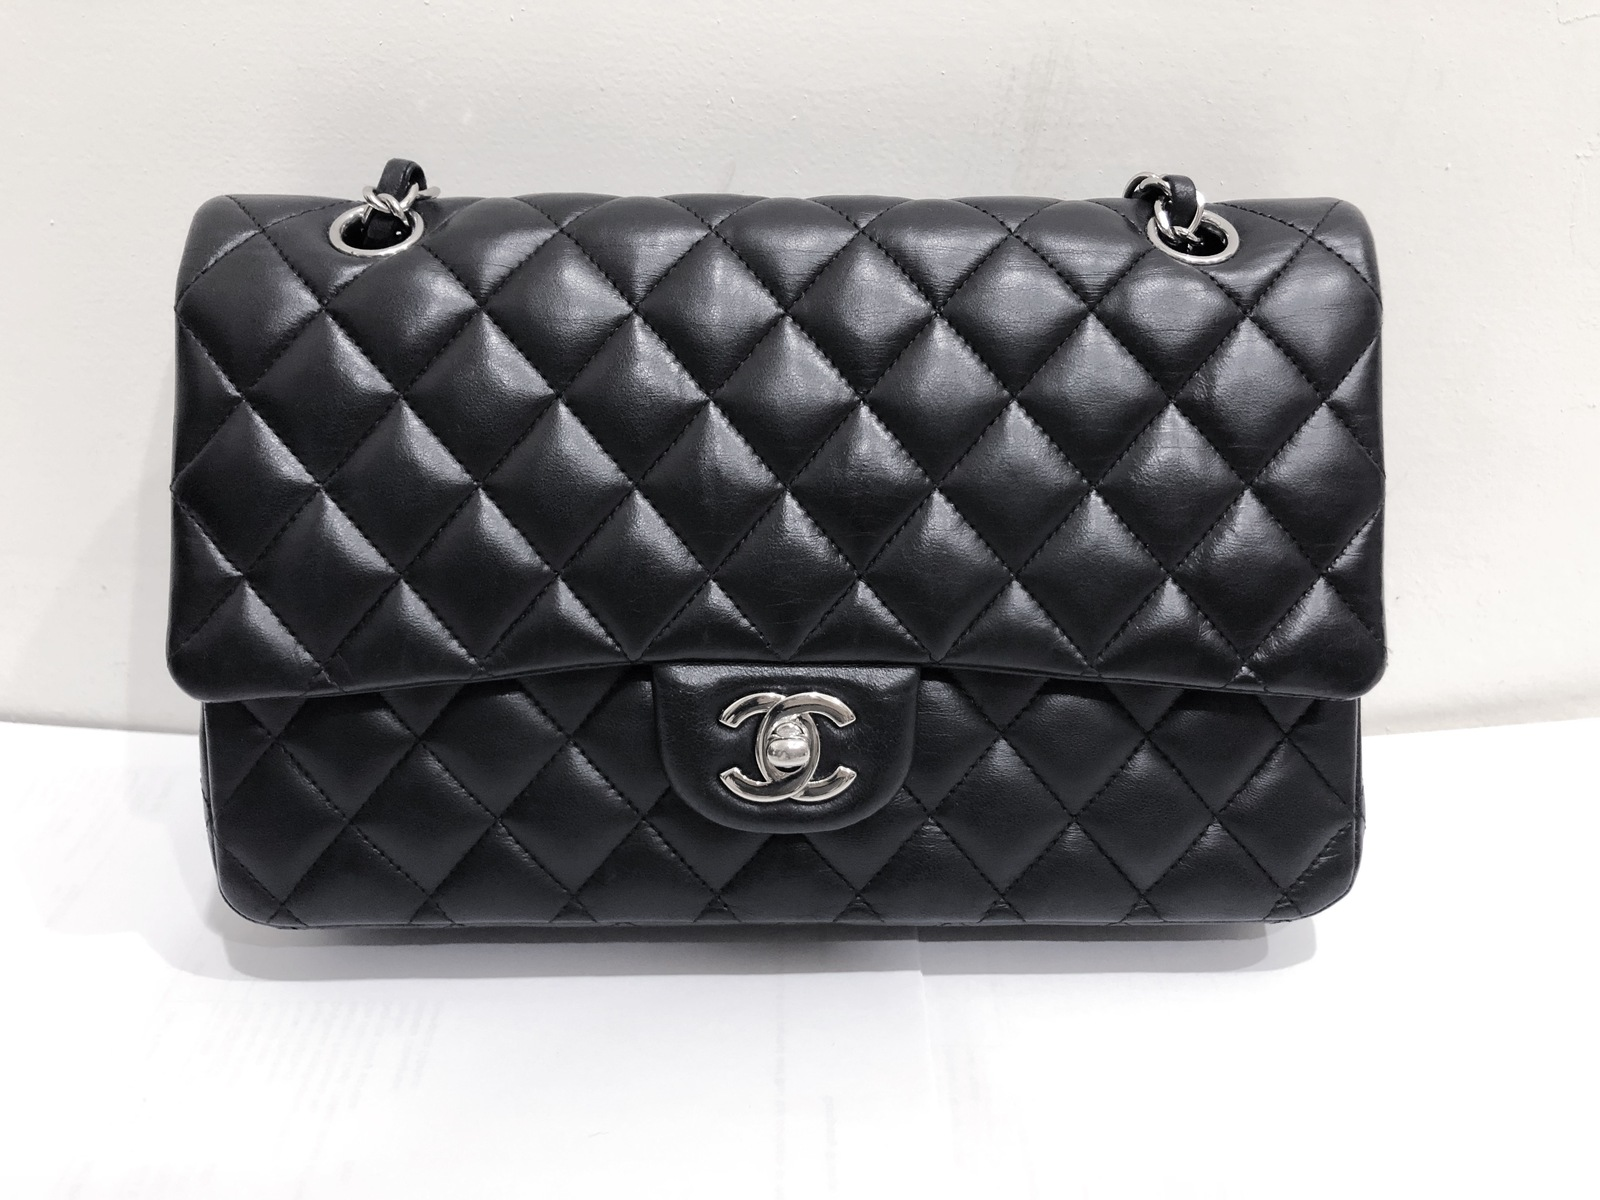 SALE Authentic Chanel BLACK QUILTED LAMBSKIN MEDIUM CLASSIC DOUBLE FLAP BAG SHW